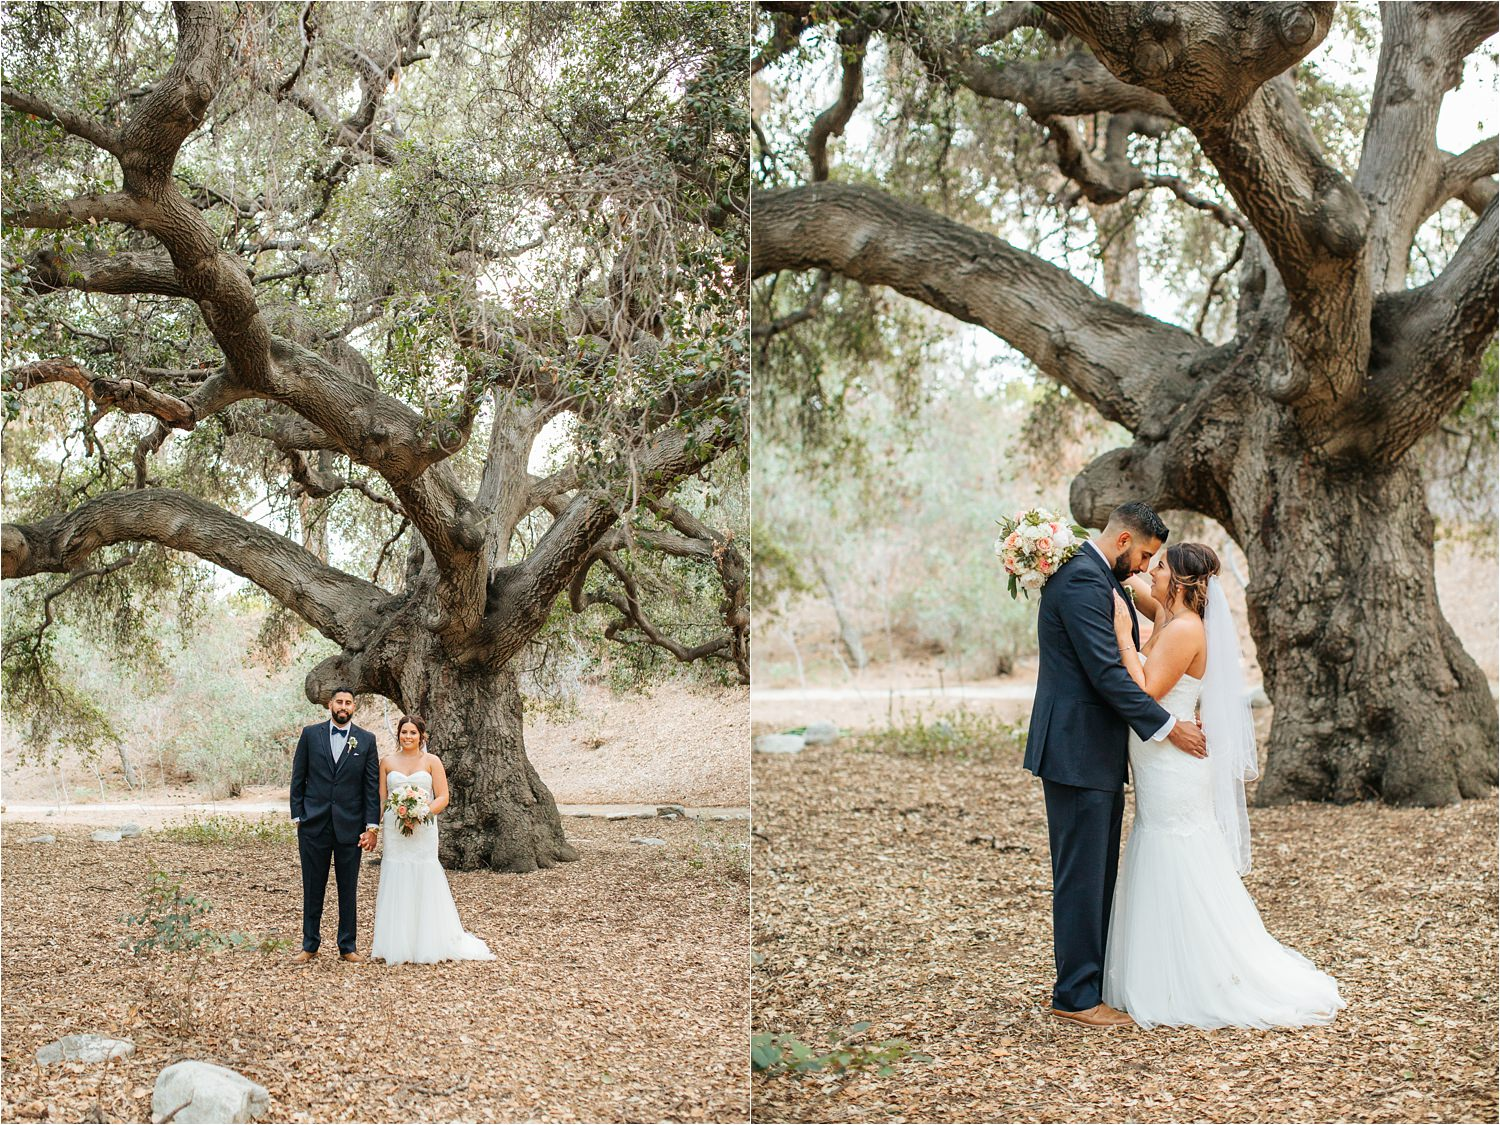 Romantic Oak Tree Bride and Groom Photos - http://brittneyhannonphotography.com